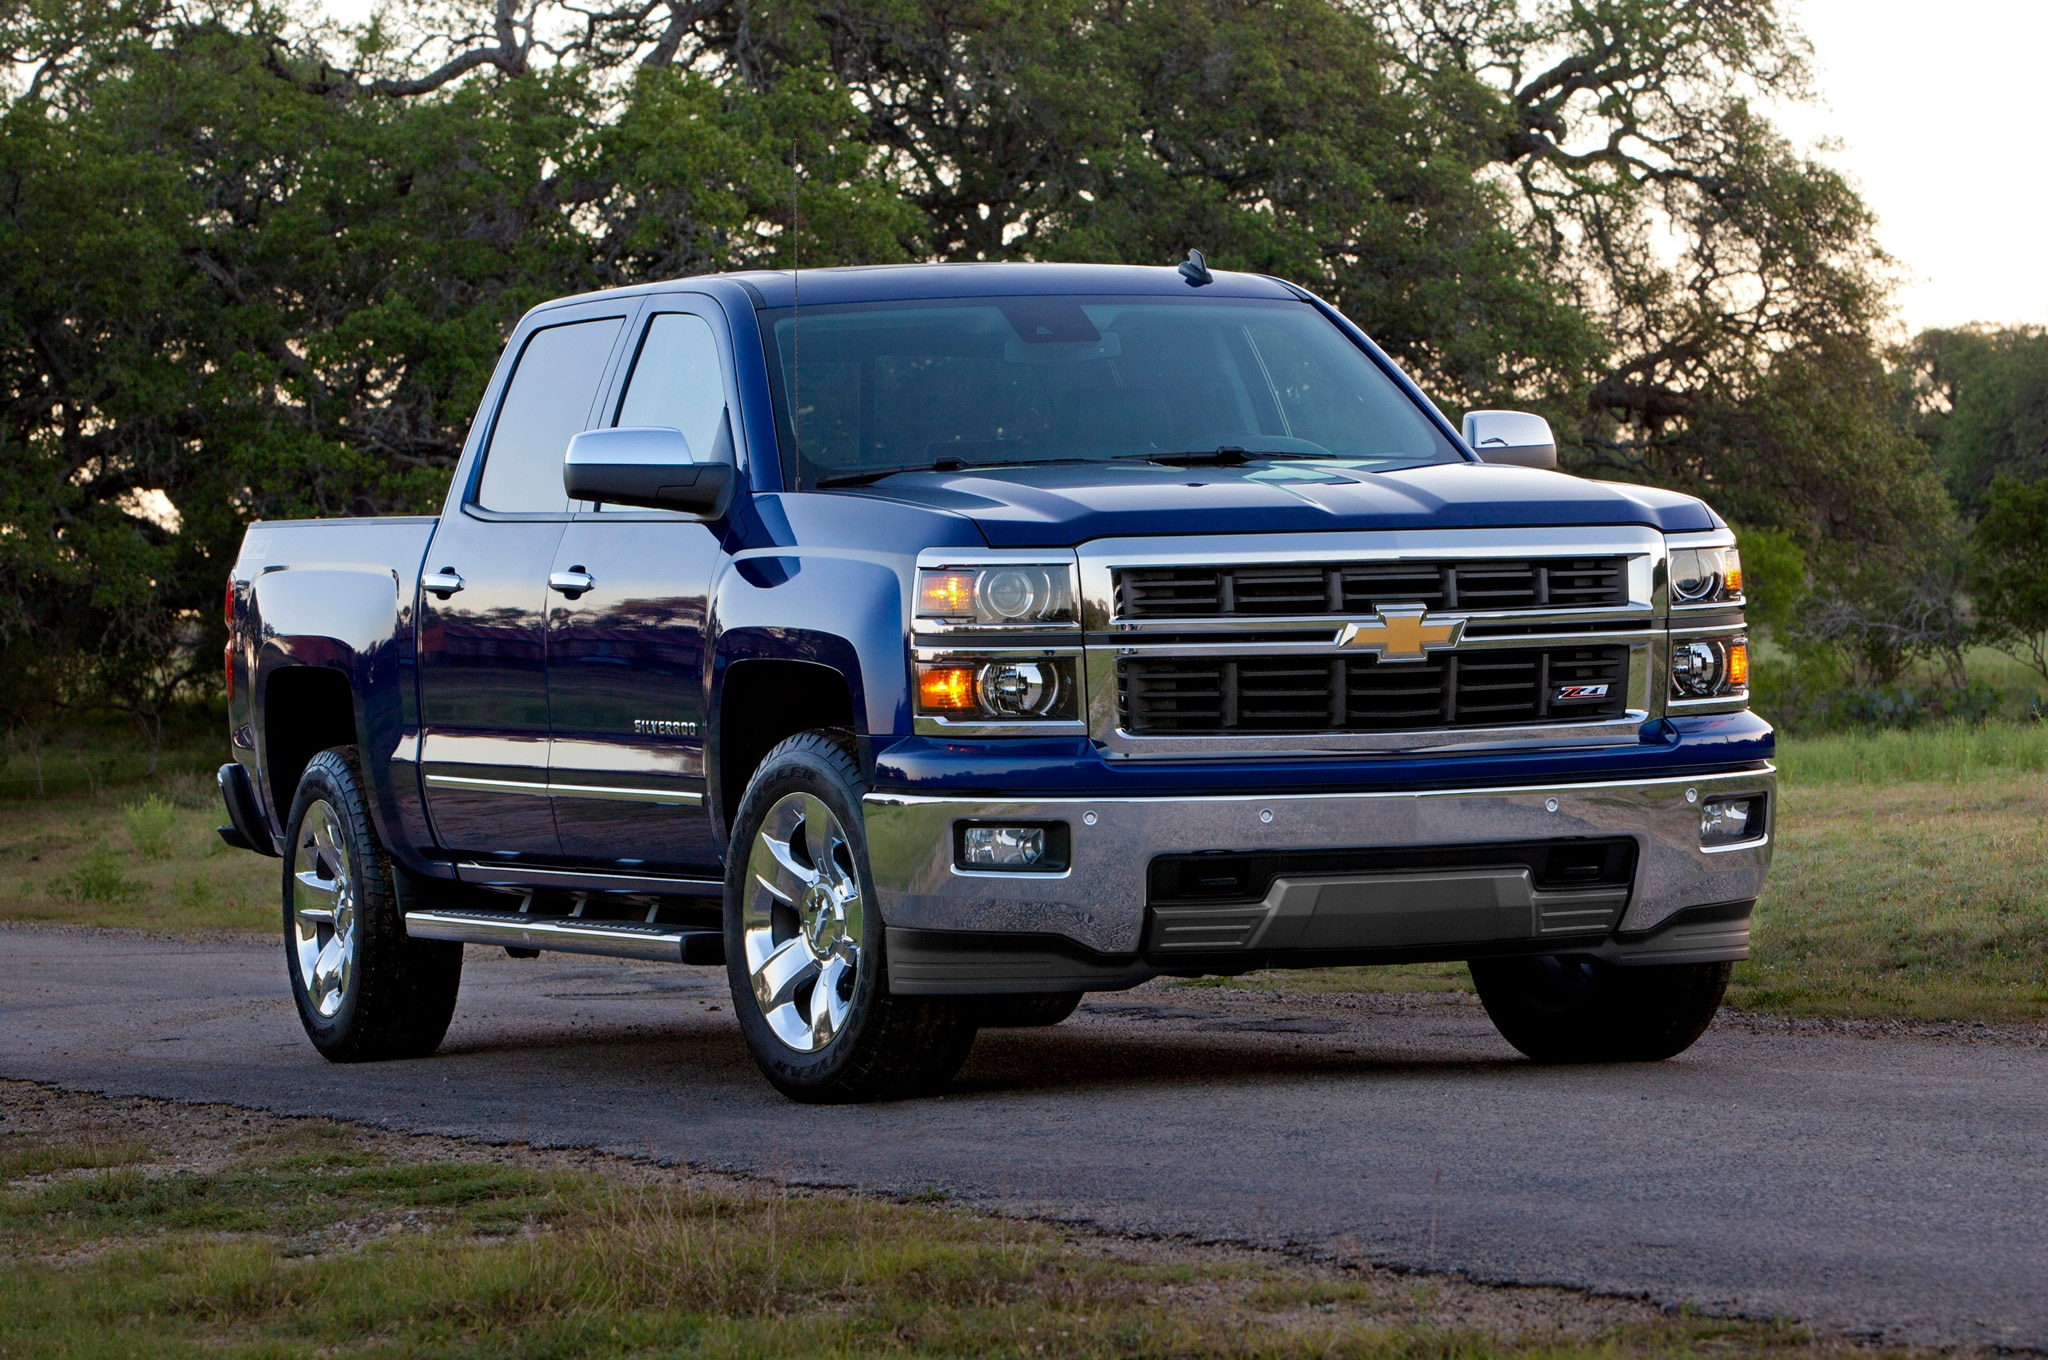 GM recall: More than 624k Chevy, GMC trucks and SUVs recalled